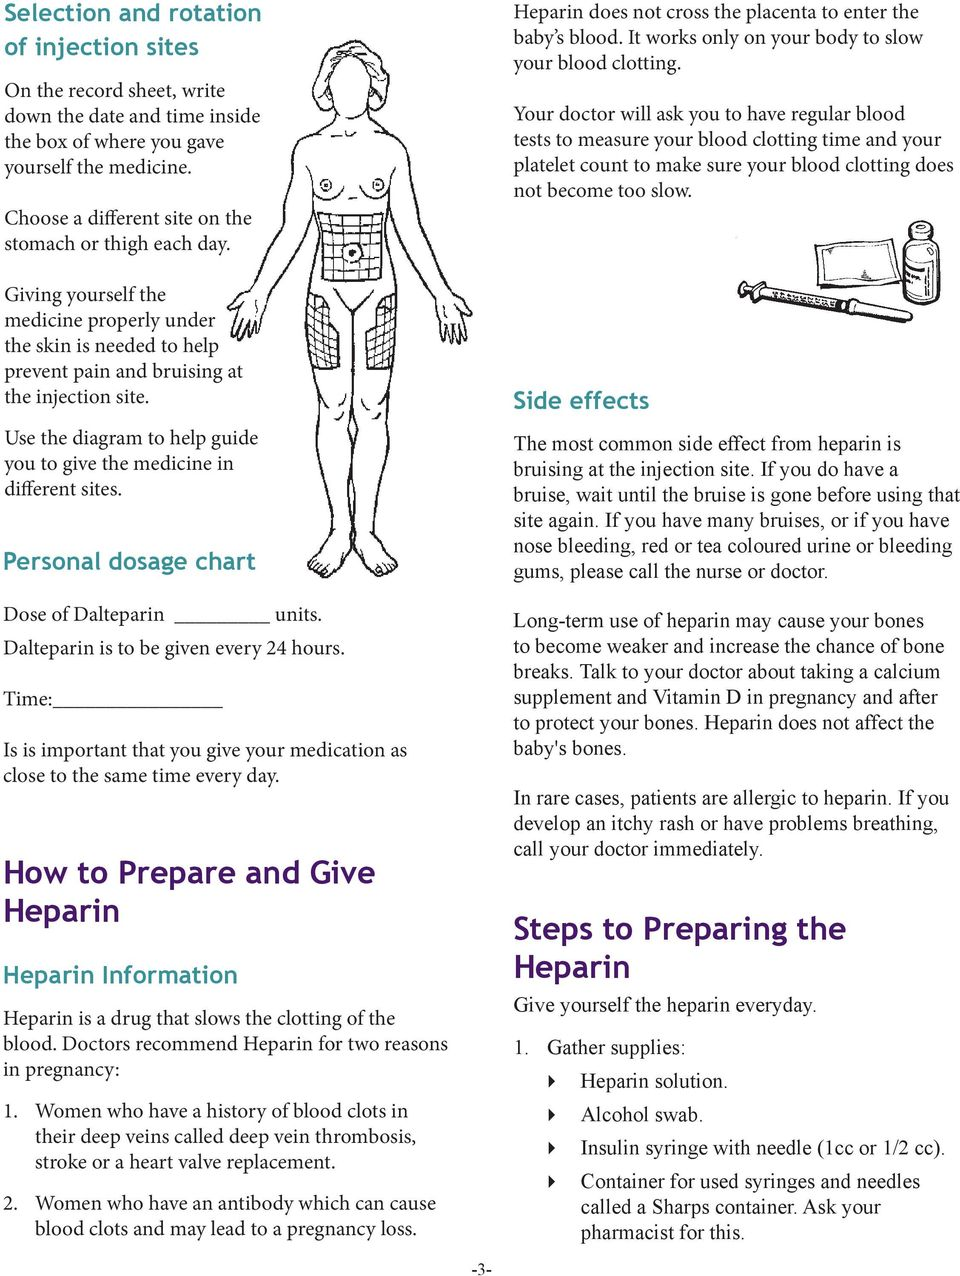 use the diagram to help guide you to give the medicine in different sites   personal